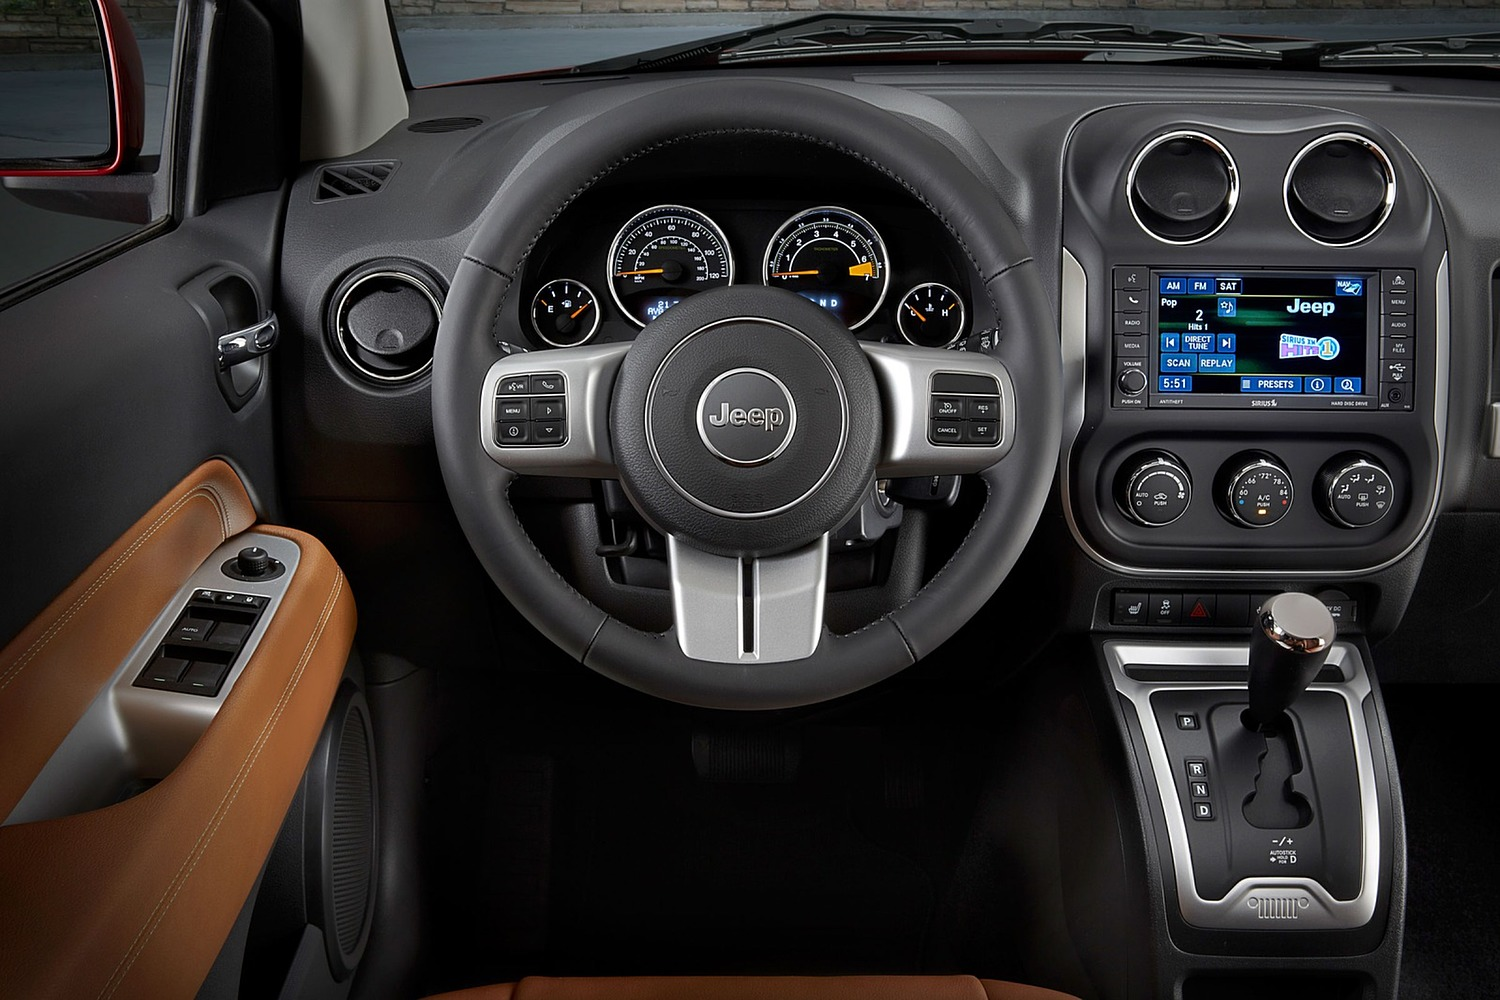 2016 Jeep Compass High Altitude 4dr SUV Interior. Options Shown.